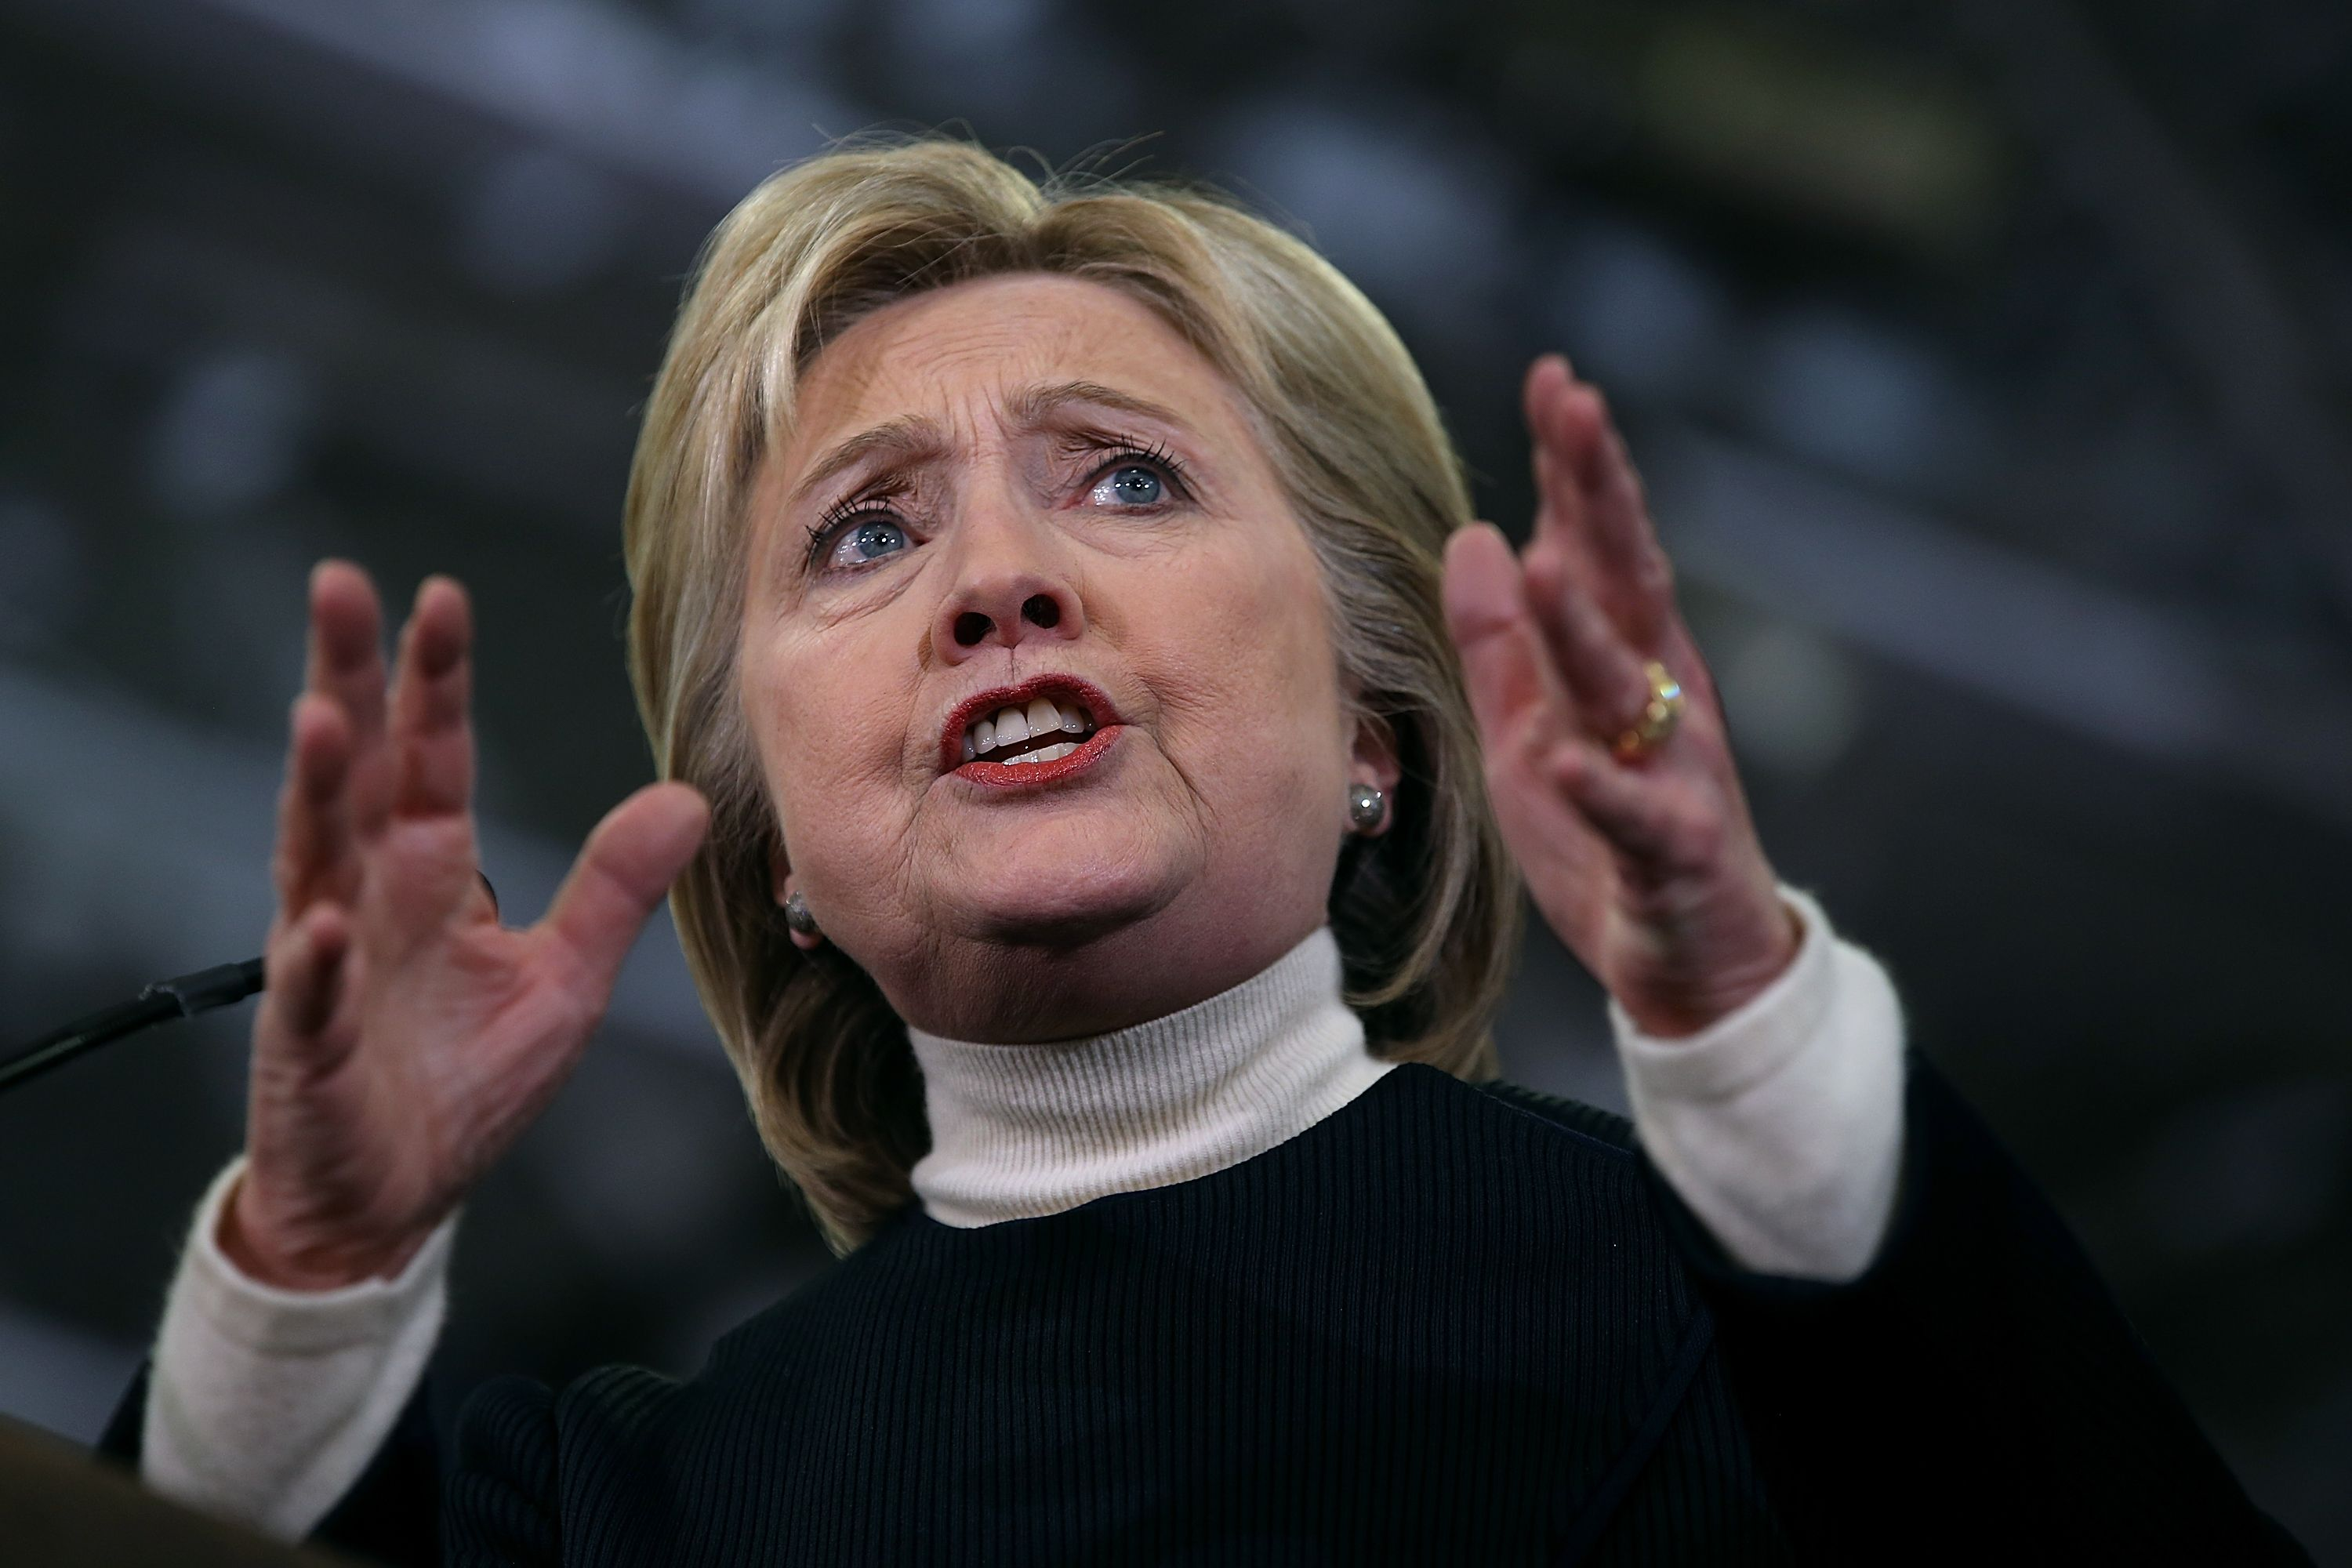 The sexist double standards hurting Hillary Clinton - The Washington Post